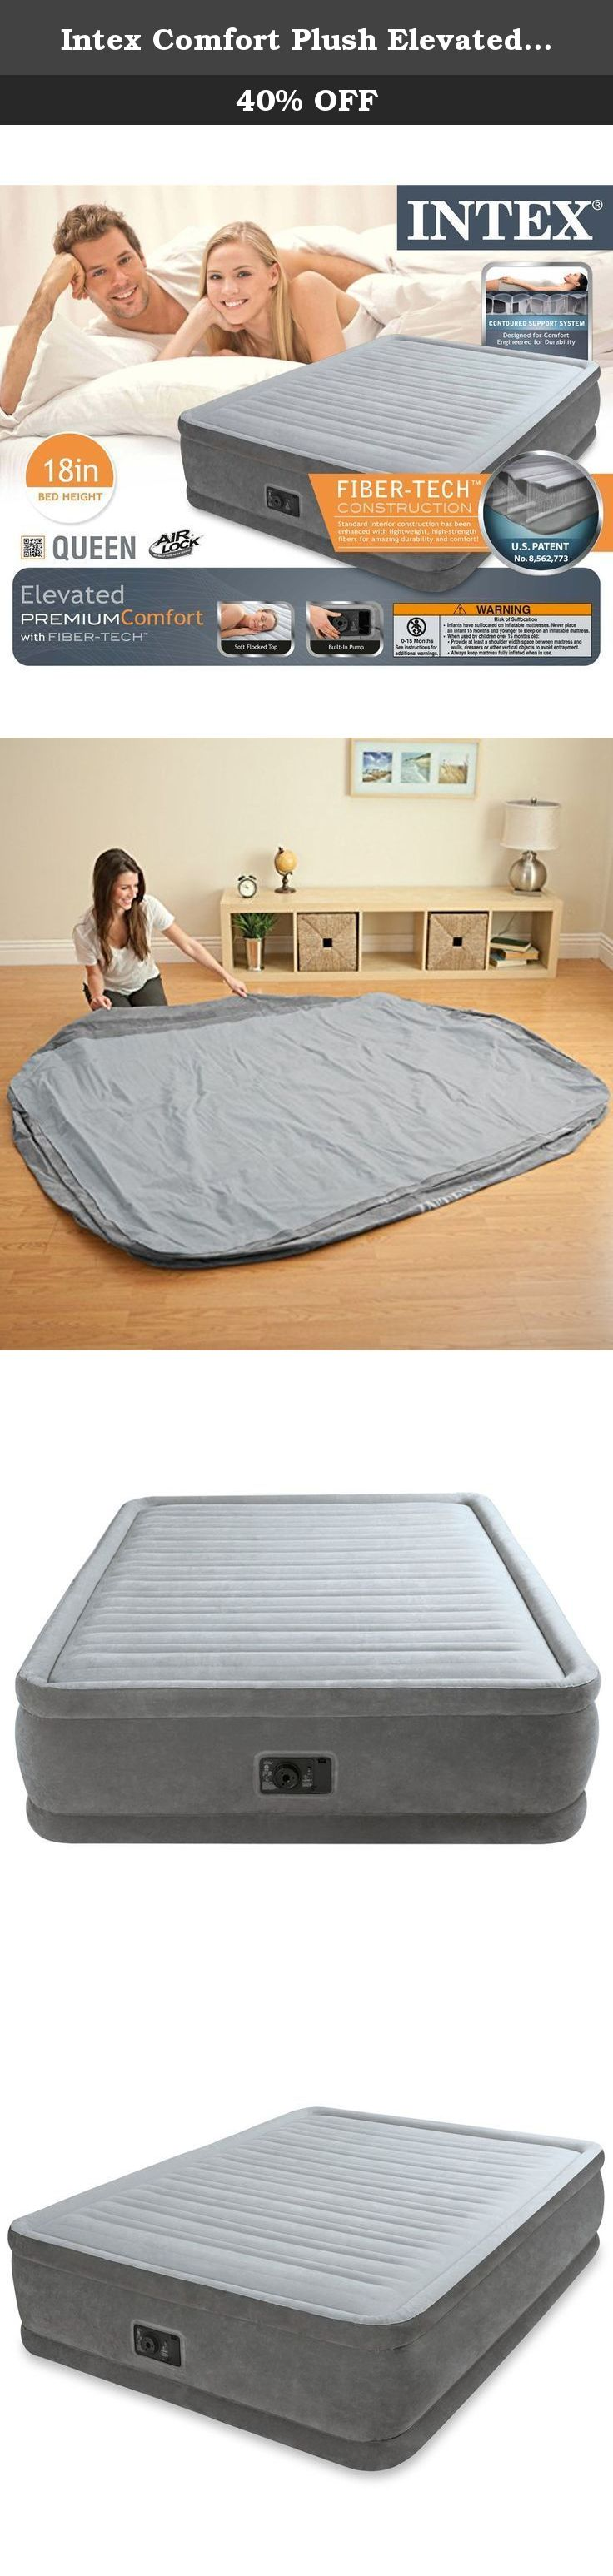 intex air mattress on intex comfort plush elevated dura beam airbed bed height 18 queen the comfort plush elevated airbed is a part of t inflatable mattress air bed bed mattress pinterest